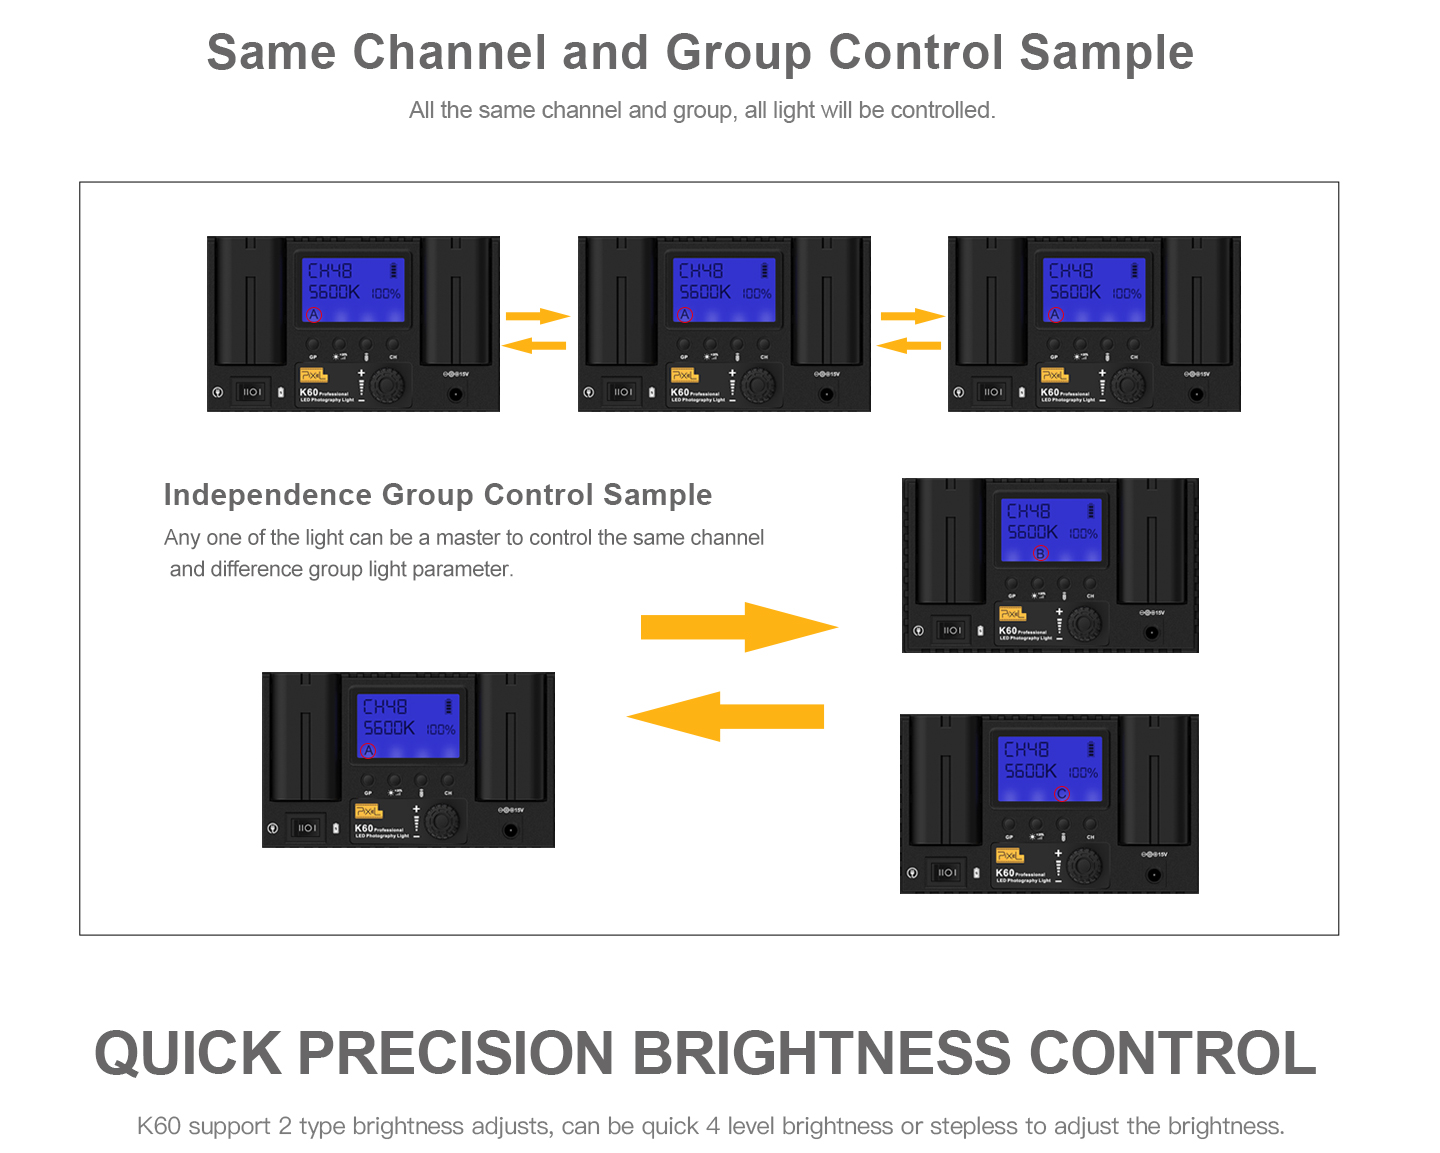 Same Channel and Group Control Sample